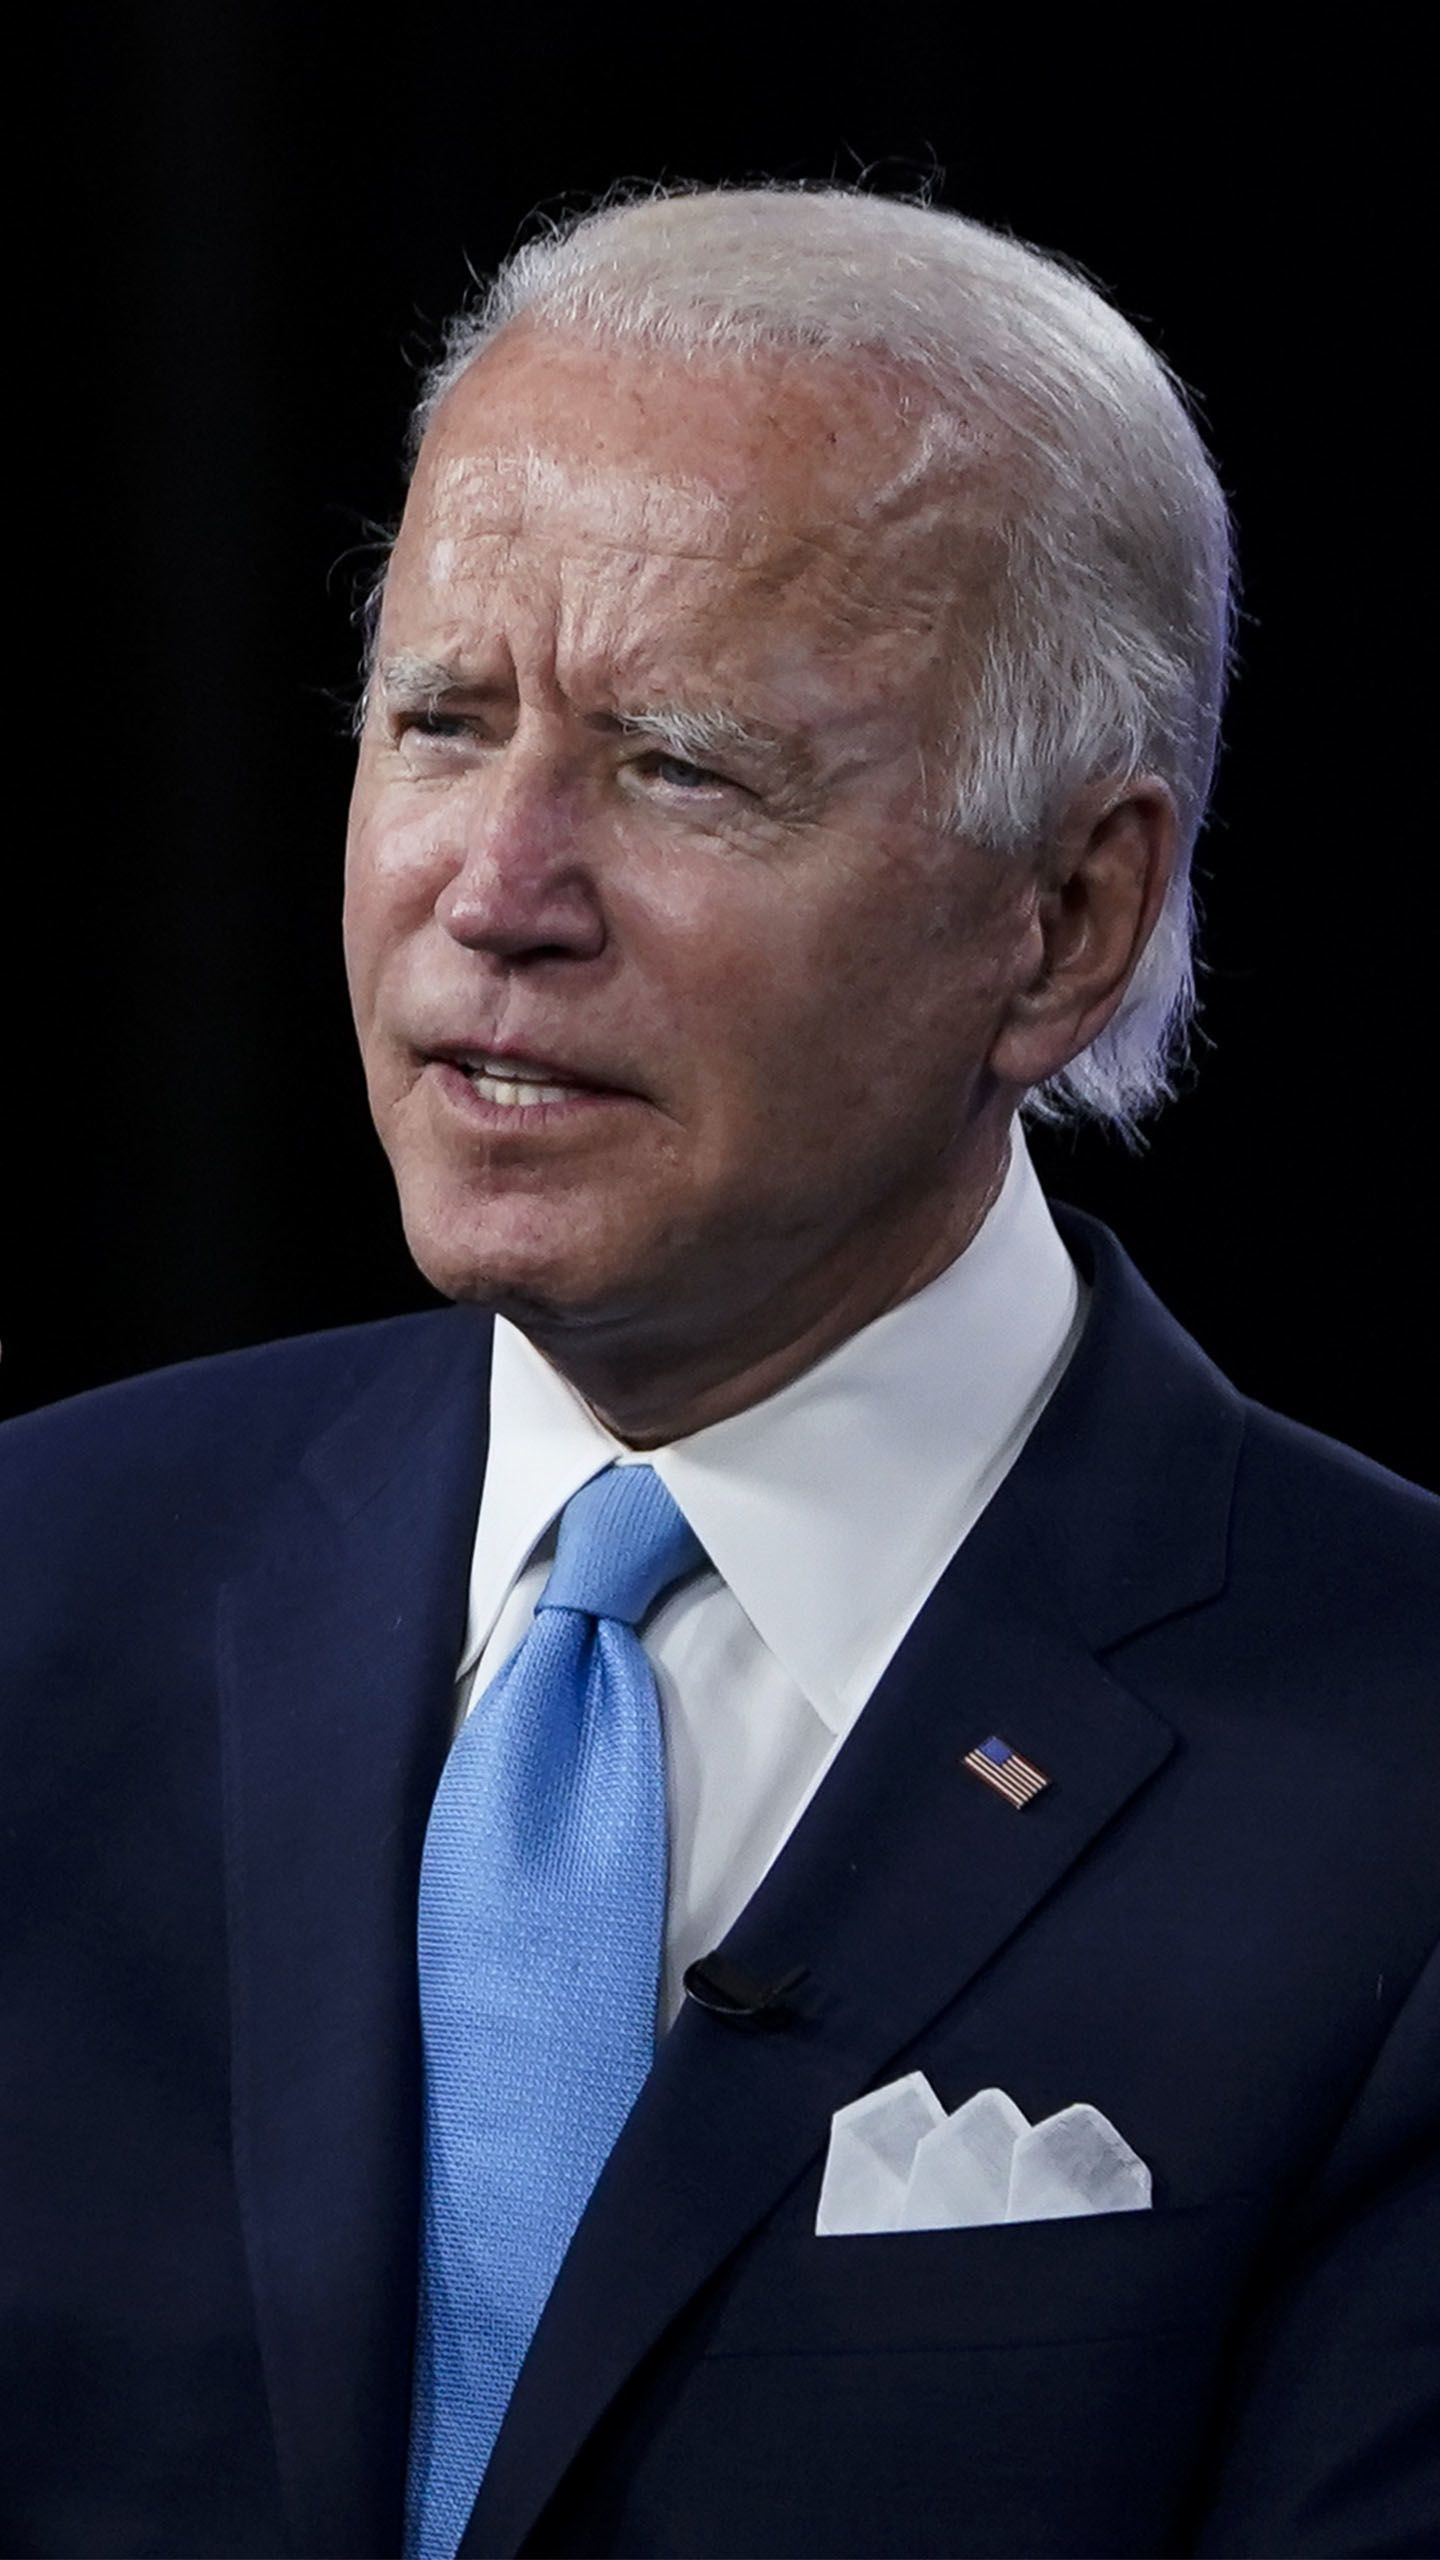 Joe Biden This Time The Oval Office